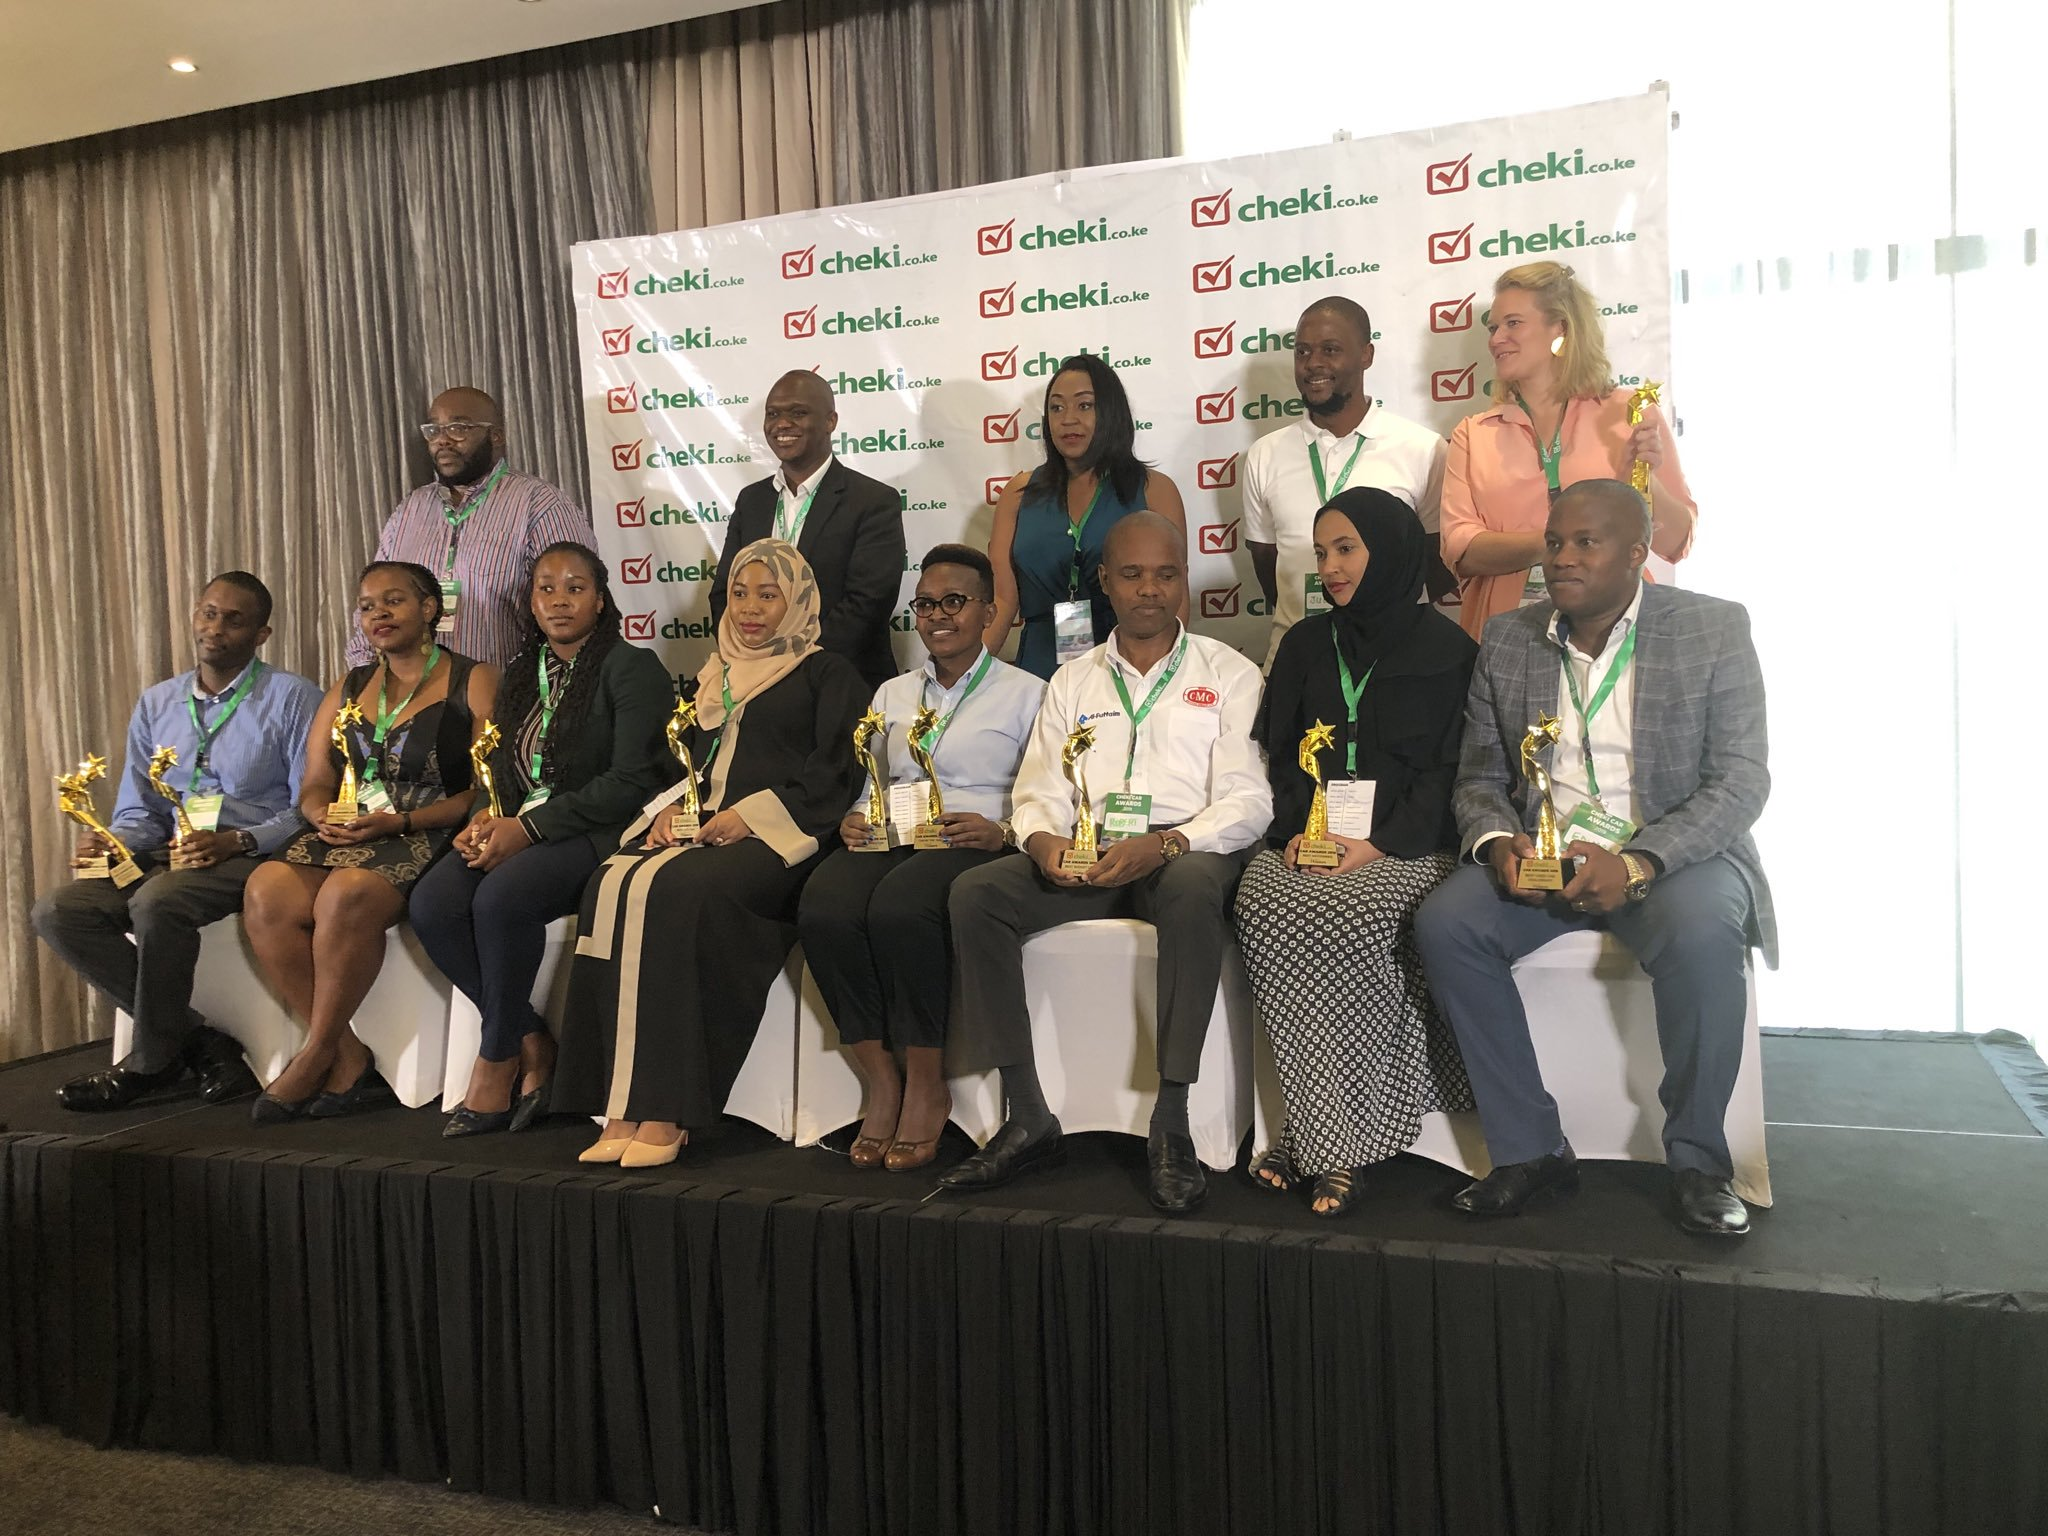 Winners and Judges pose for a photo at the Cheki Car Awards. Toyota Kenya scooped the top award at the event. www.businesstoday.co.ke